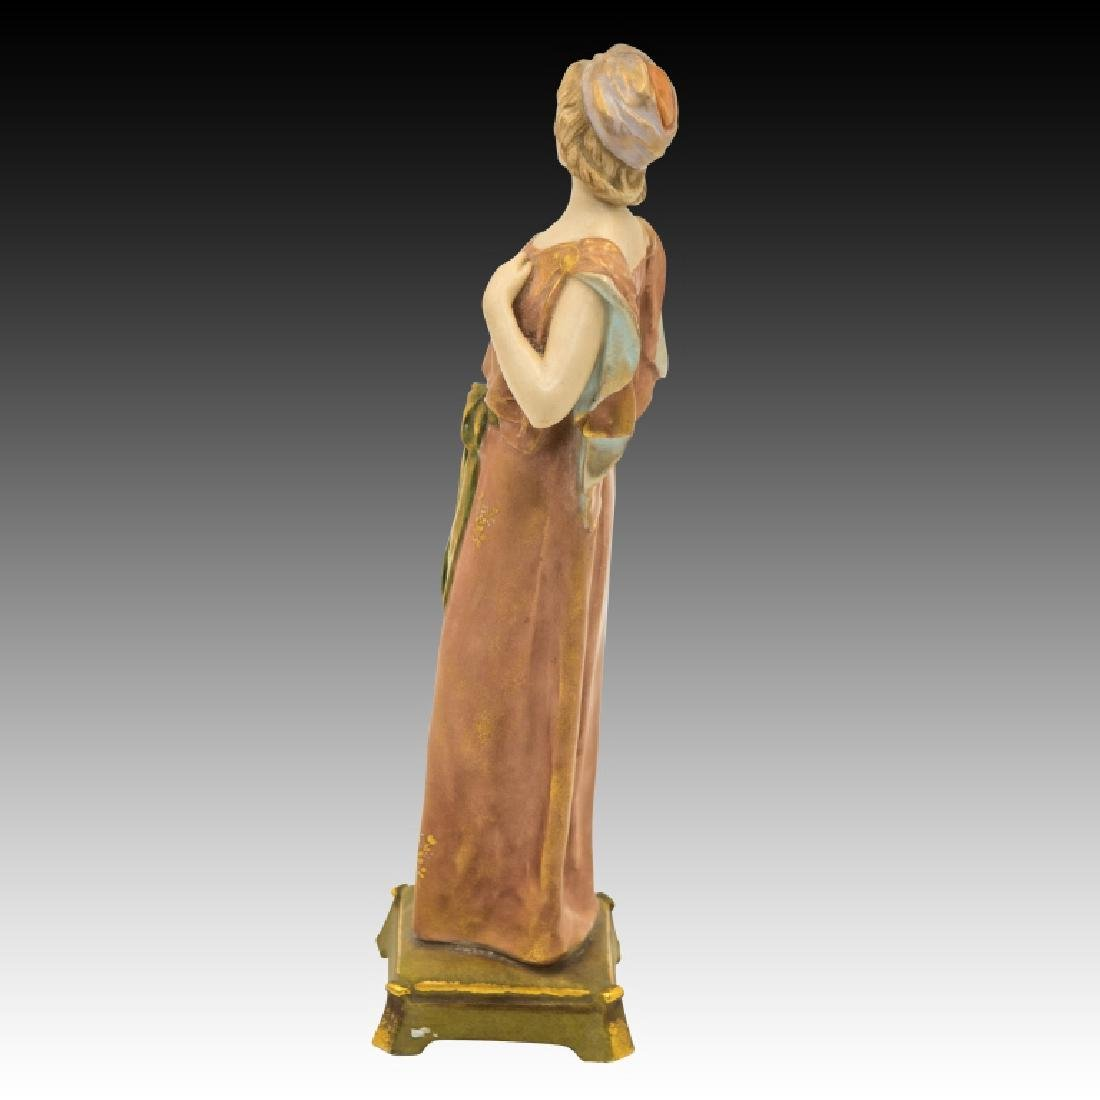 2 Pastel Figurines Man and Woman - 4